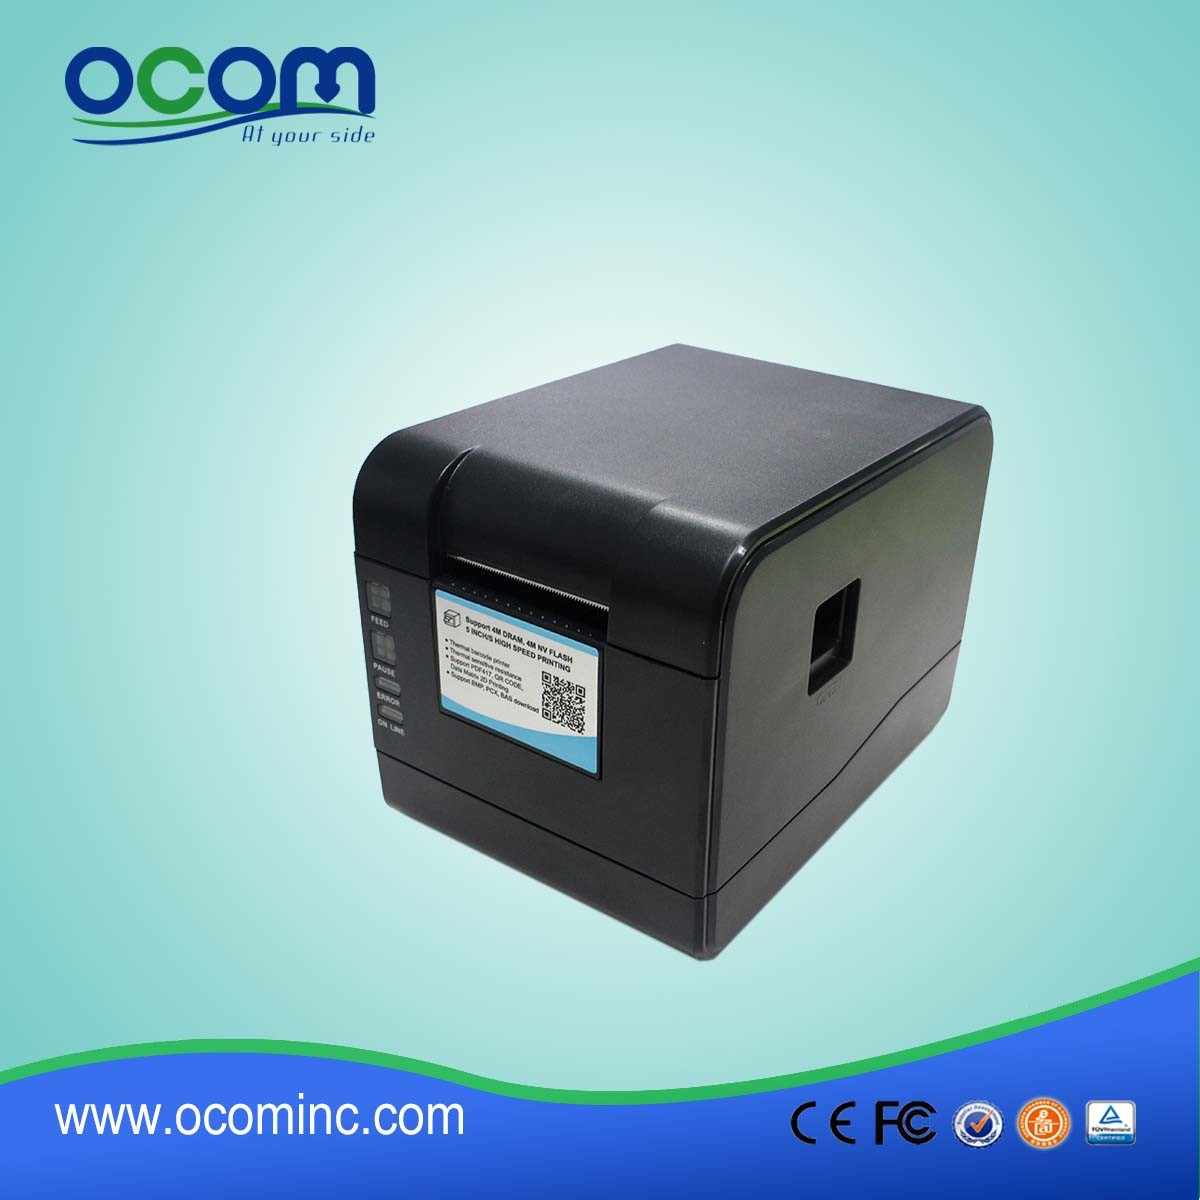 Ocbp-006 Industrial Label Bar Code Printing Printer